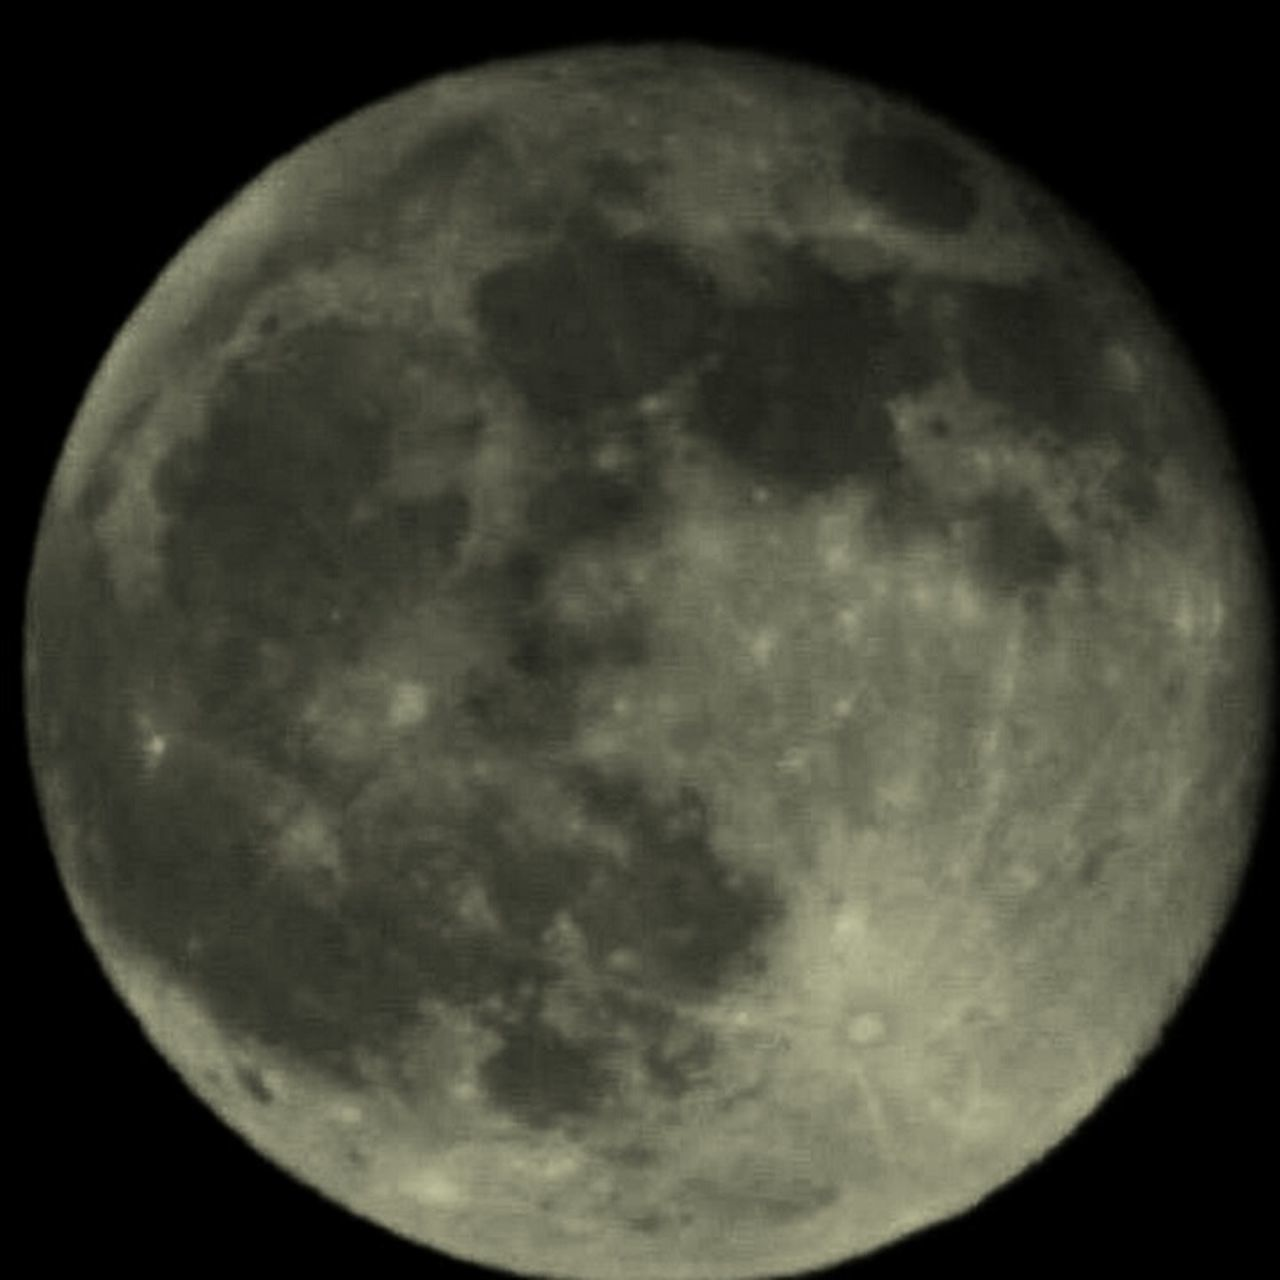 moon, full moon, astronomy, night, moon surface, discovery, space, no people, space exploration, close-up, sky, nature, outdoors